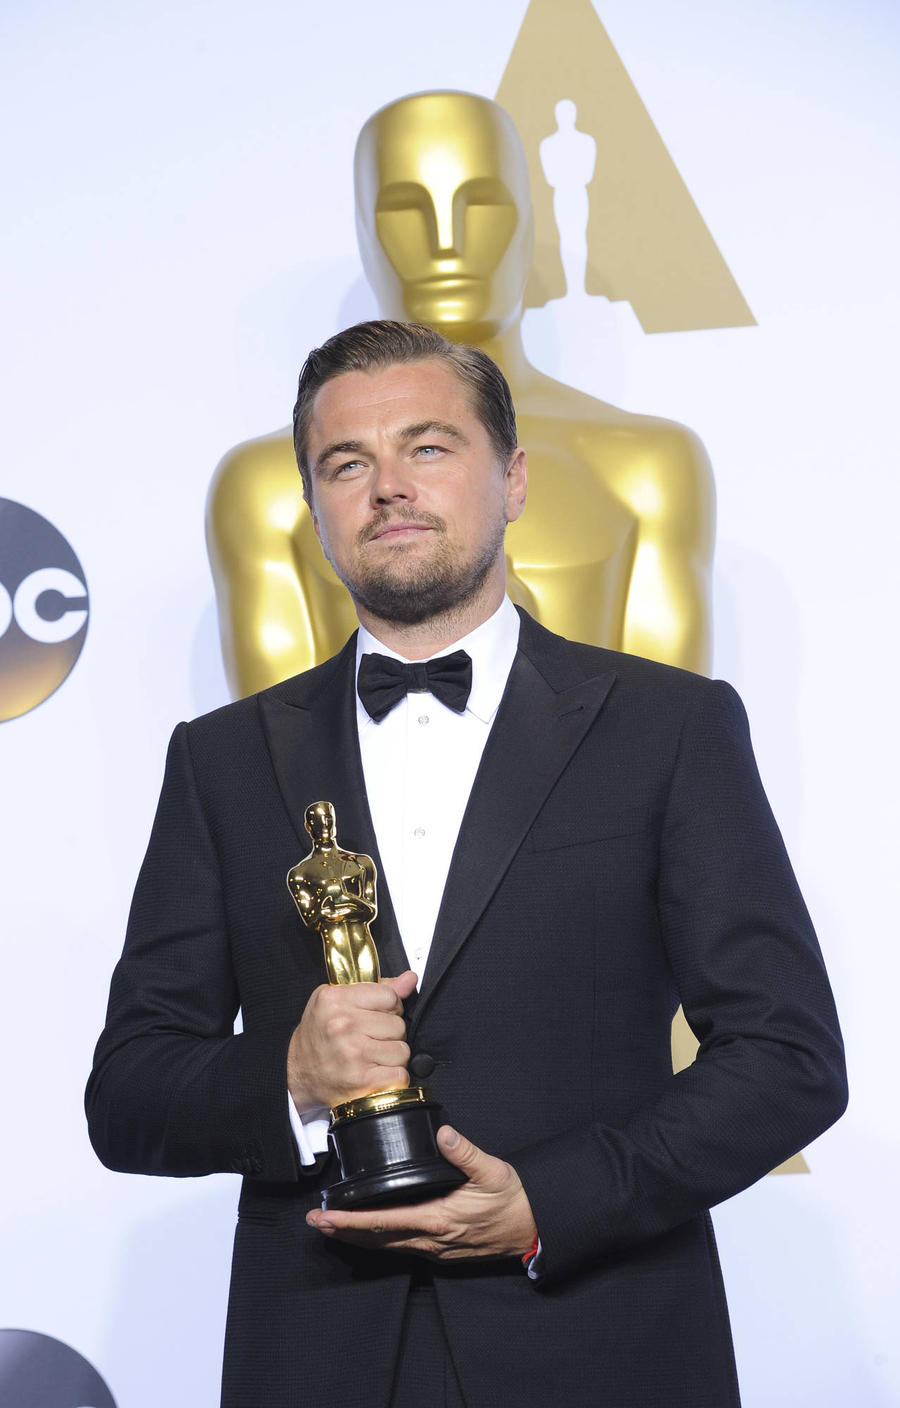 Leonardo Dicaprio Auctioning Off Tennis Date At Star-studded Charity Event